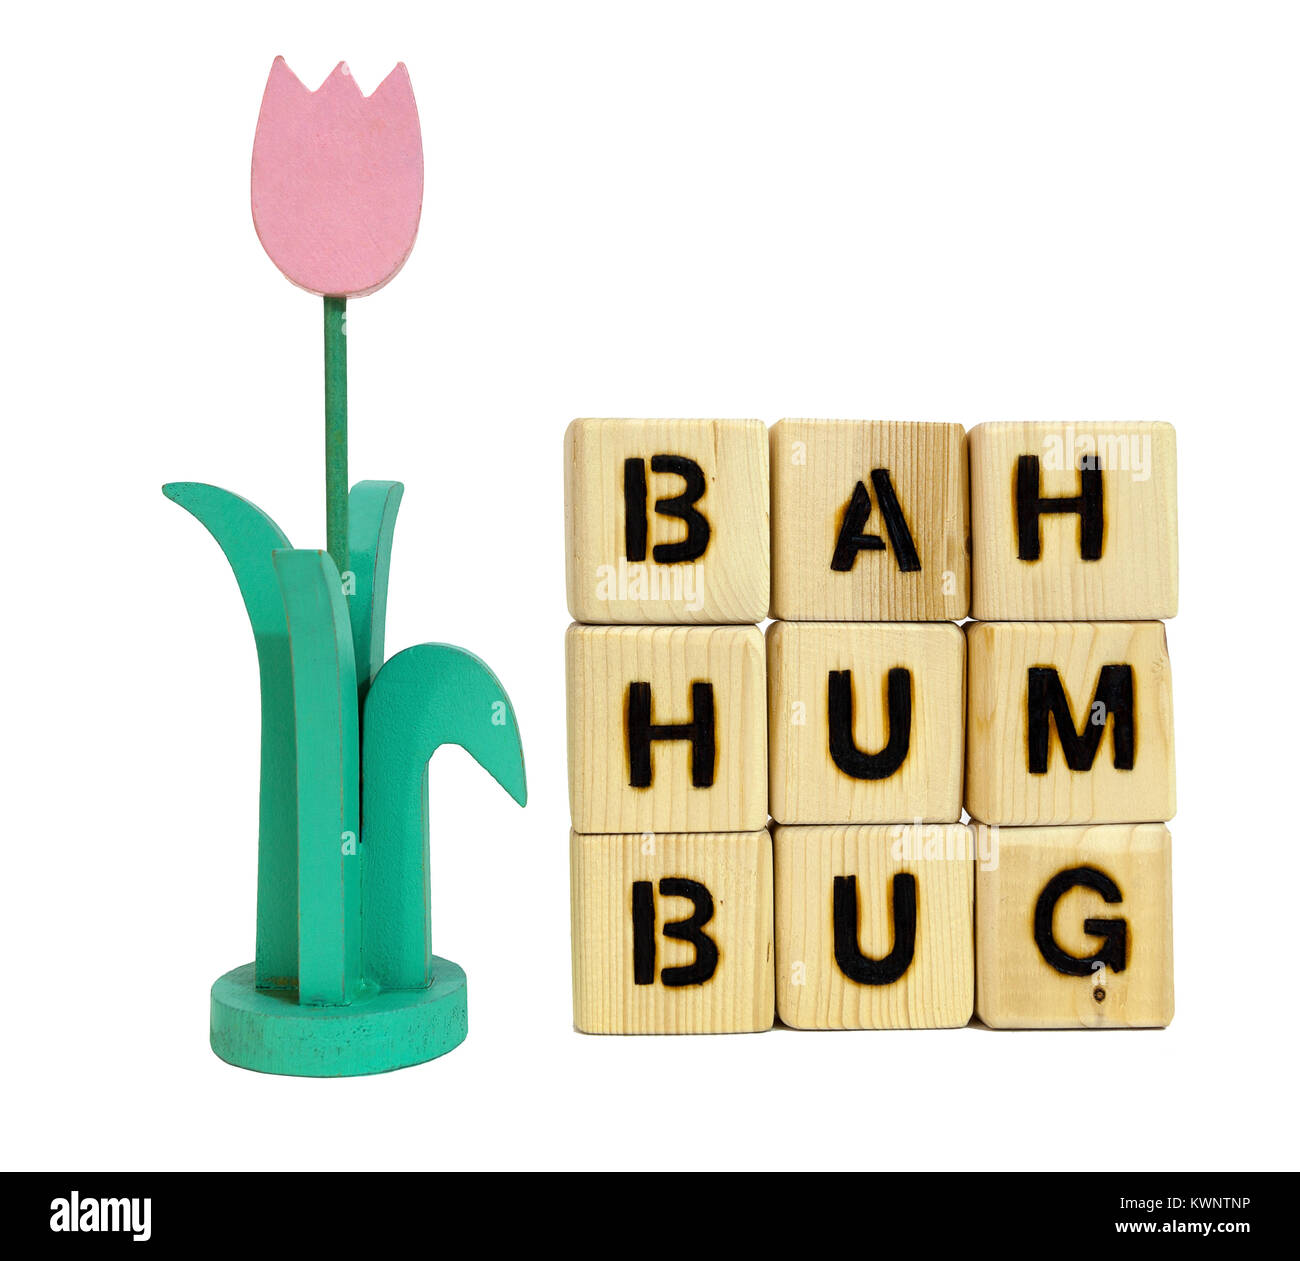 Spring-flowers and a new beginning. Humph! Bah humbug! - Stock Image